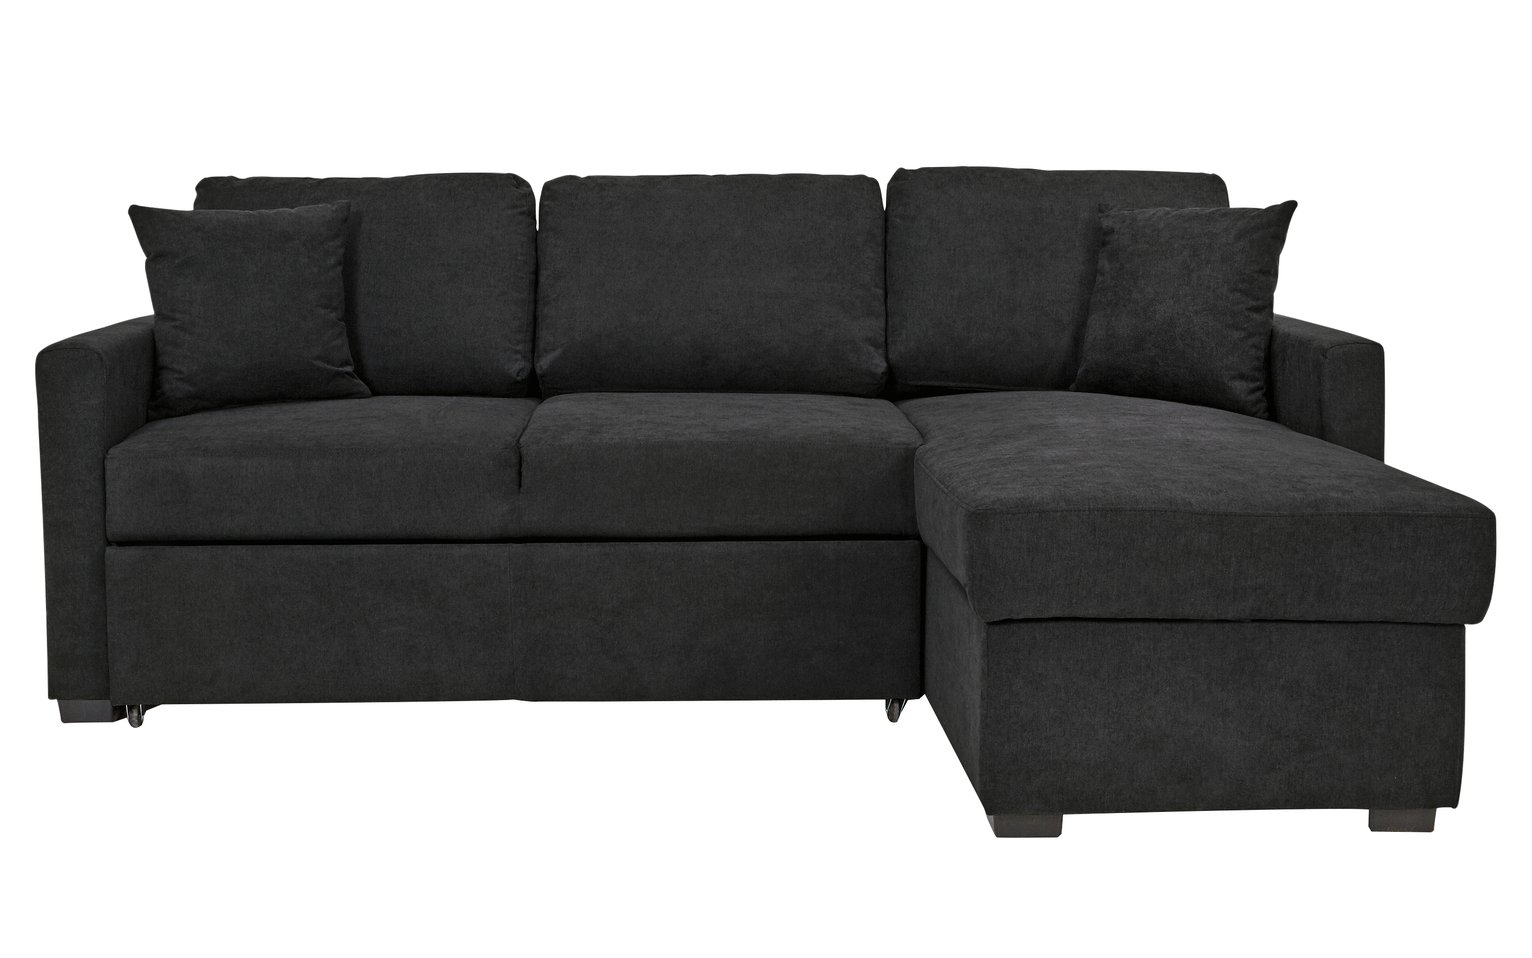 Buy HOME Reagan Fabric Right Corner Chaise Sofa Bed Charcoal at